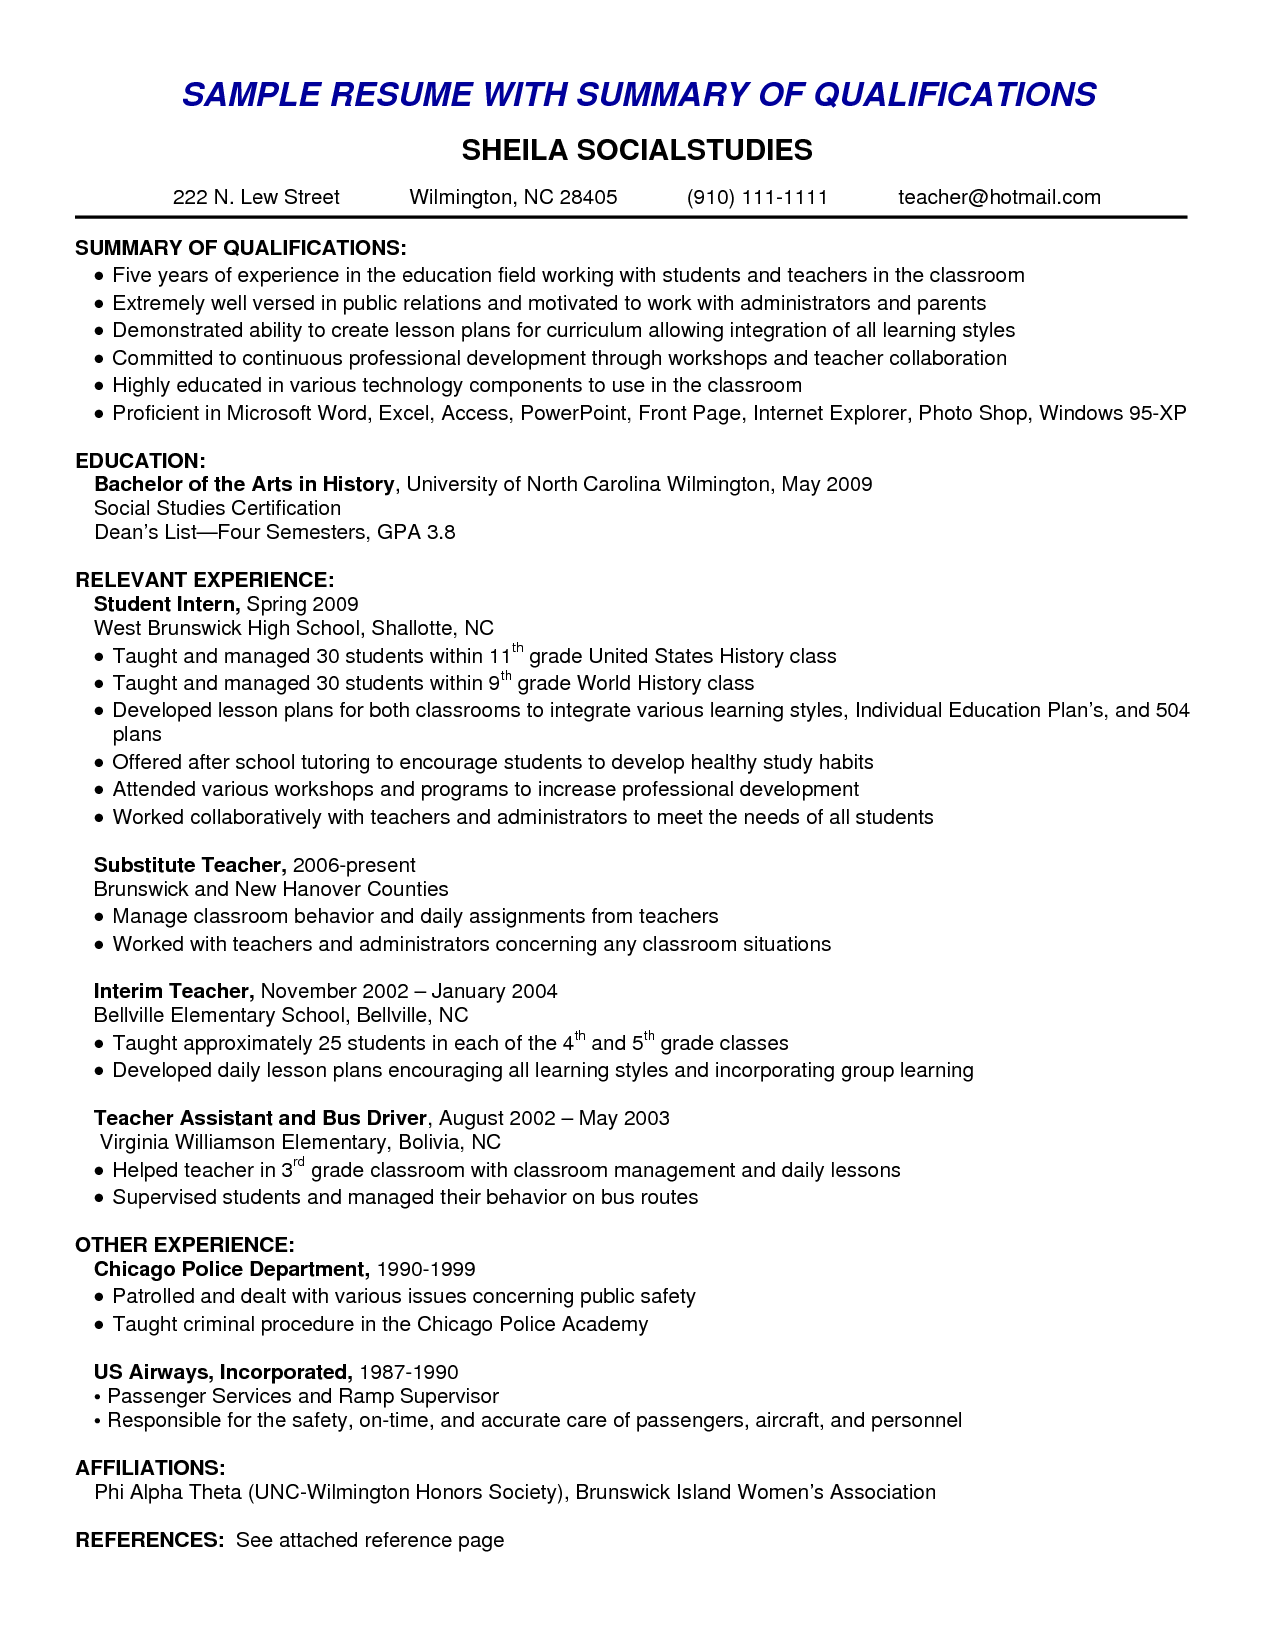 Examples Of A Summary For A Resume Entrancing Resume Examples Qualifications  Template Resume Examples And .